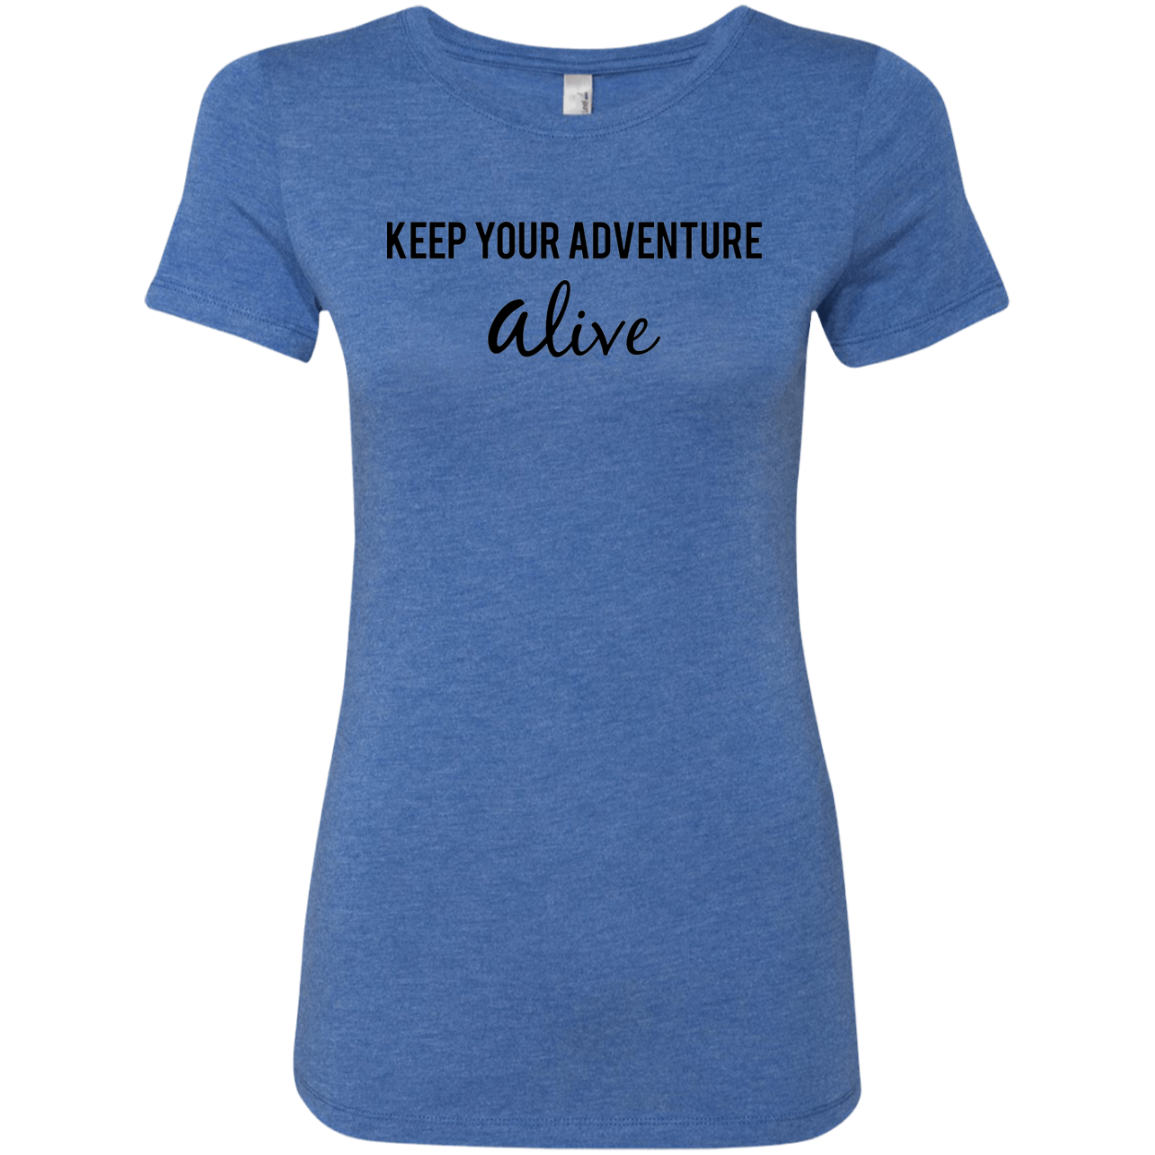 Keep Your Adventure Alive Women's Classic Tee - Trendy Tees